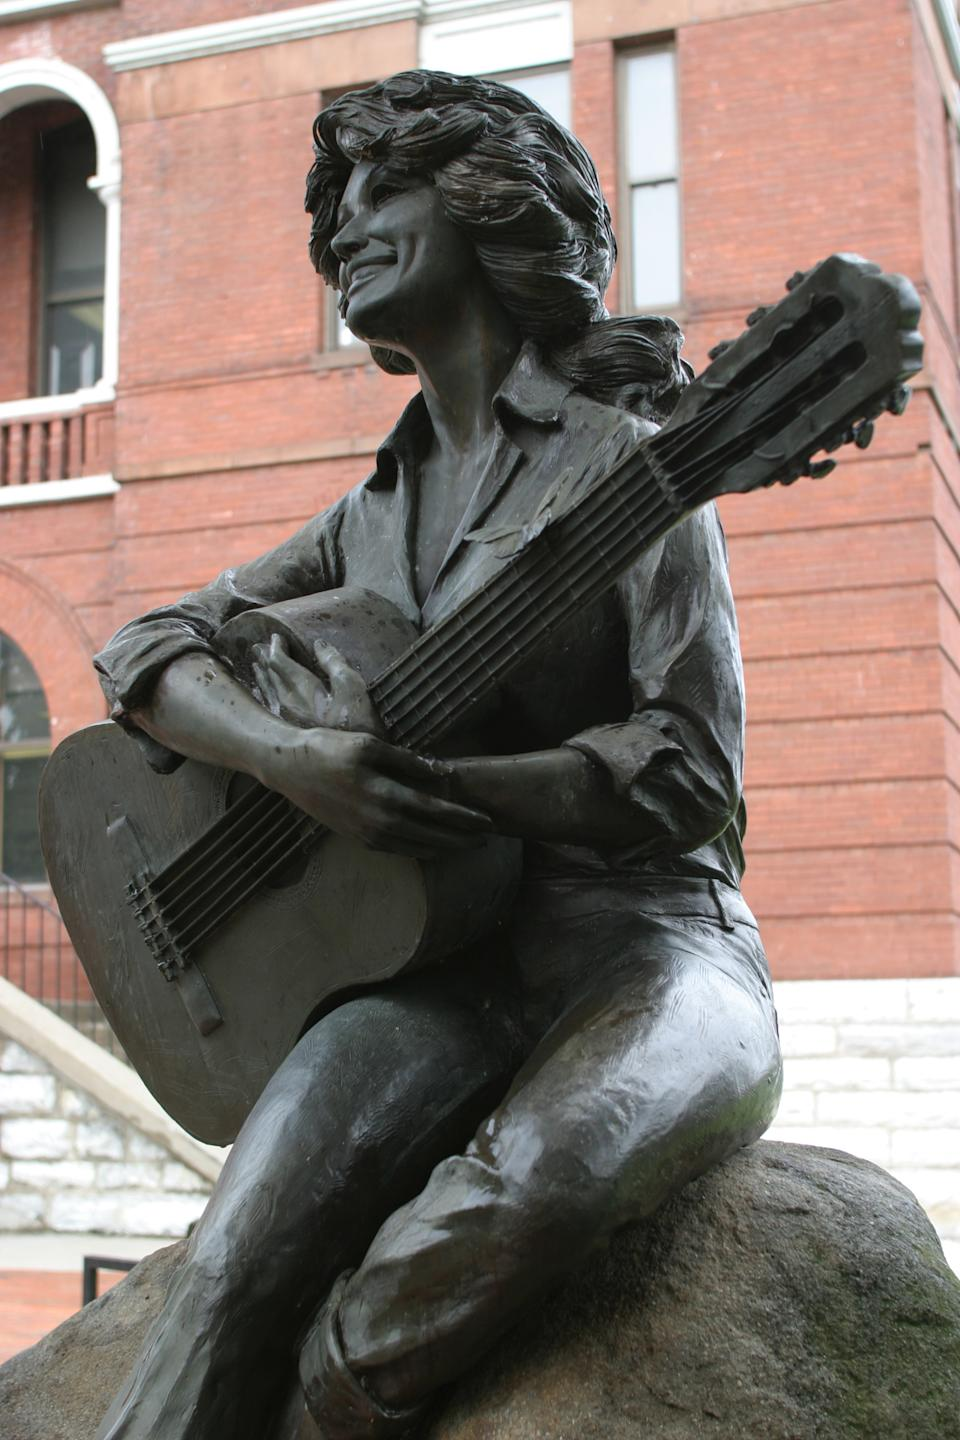 A Dolly Parton statue on the lawn of the Sevier County Courthouse. (Photo by: Jeffrey Greenberg/Universal Images Group via Getty Images)